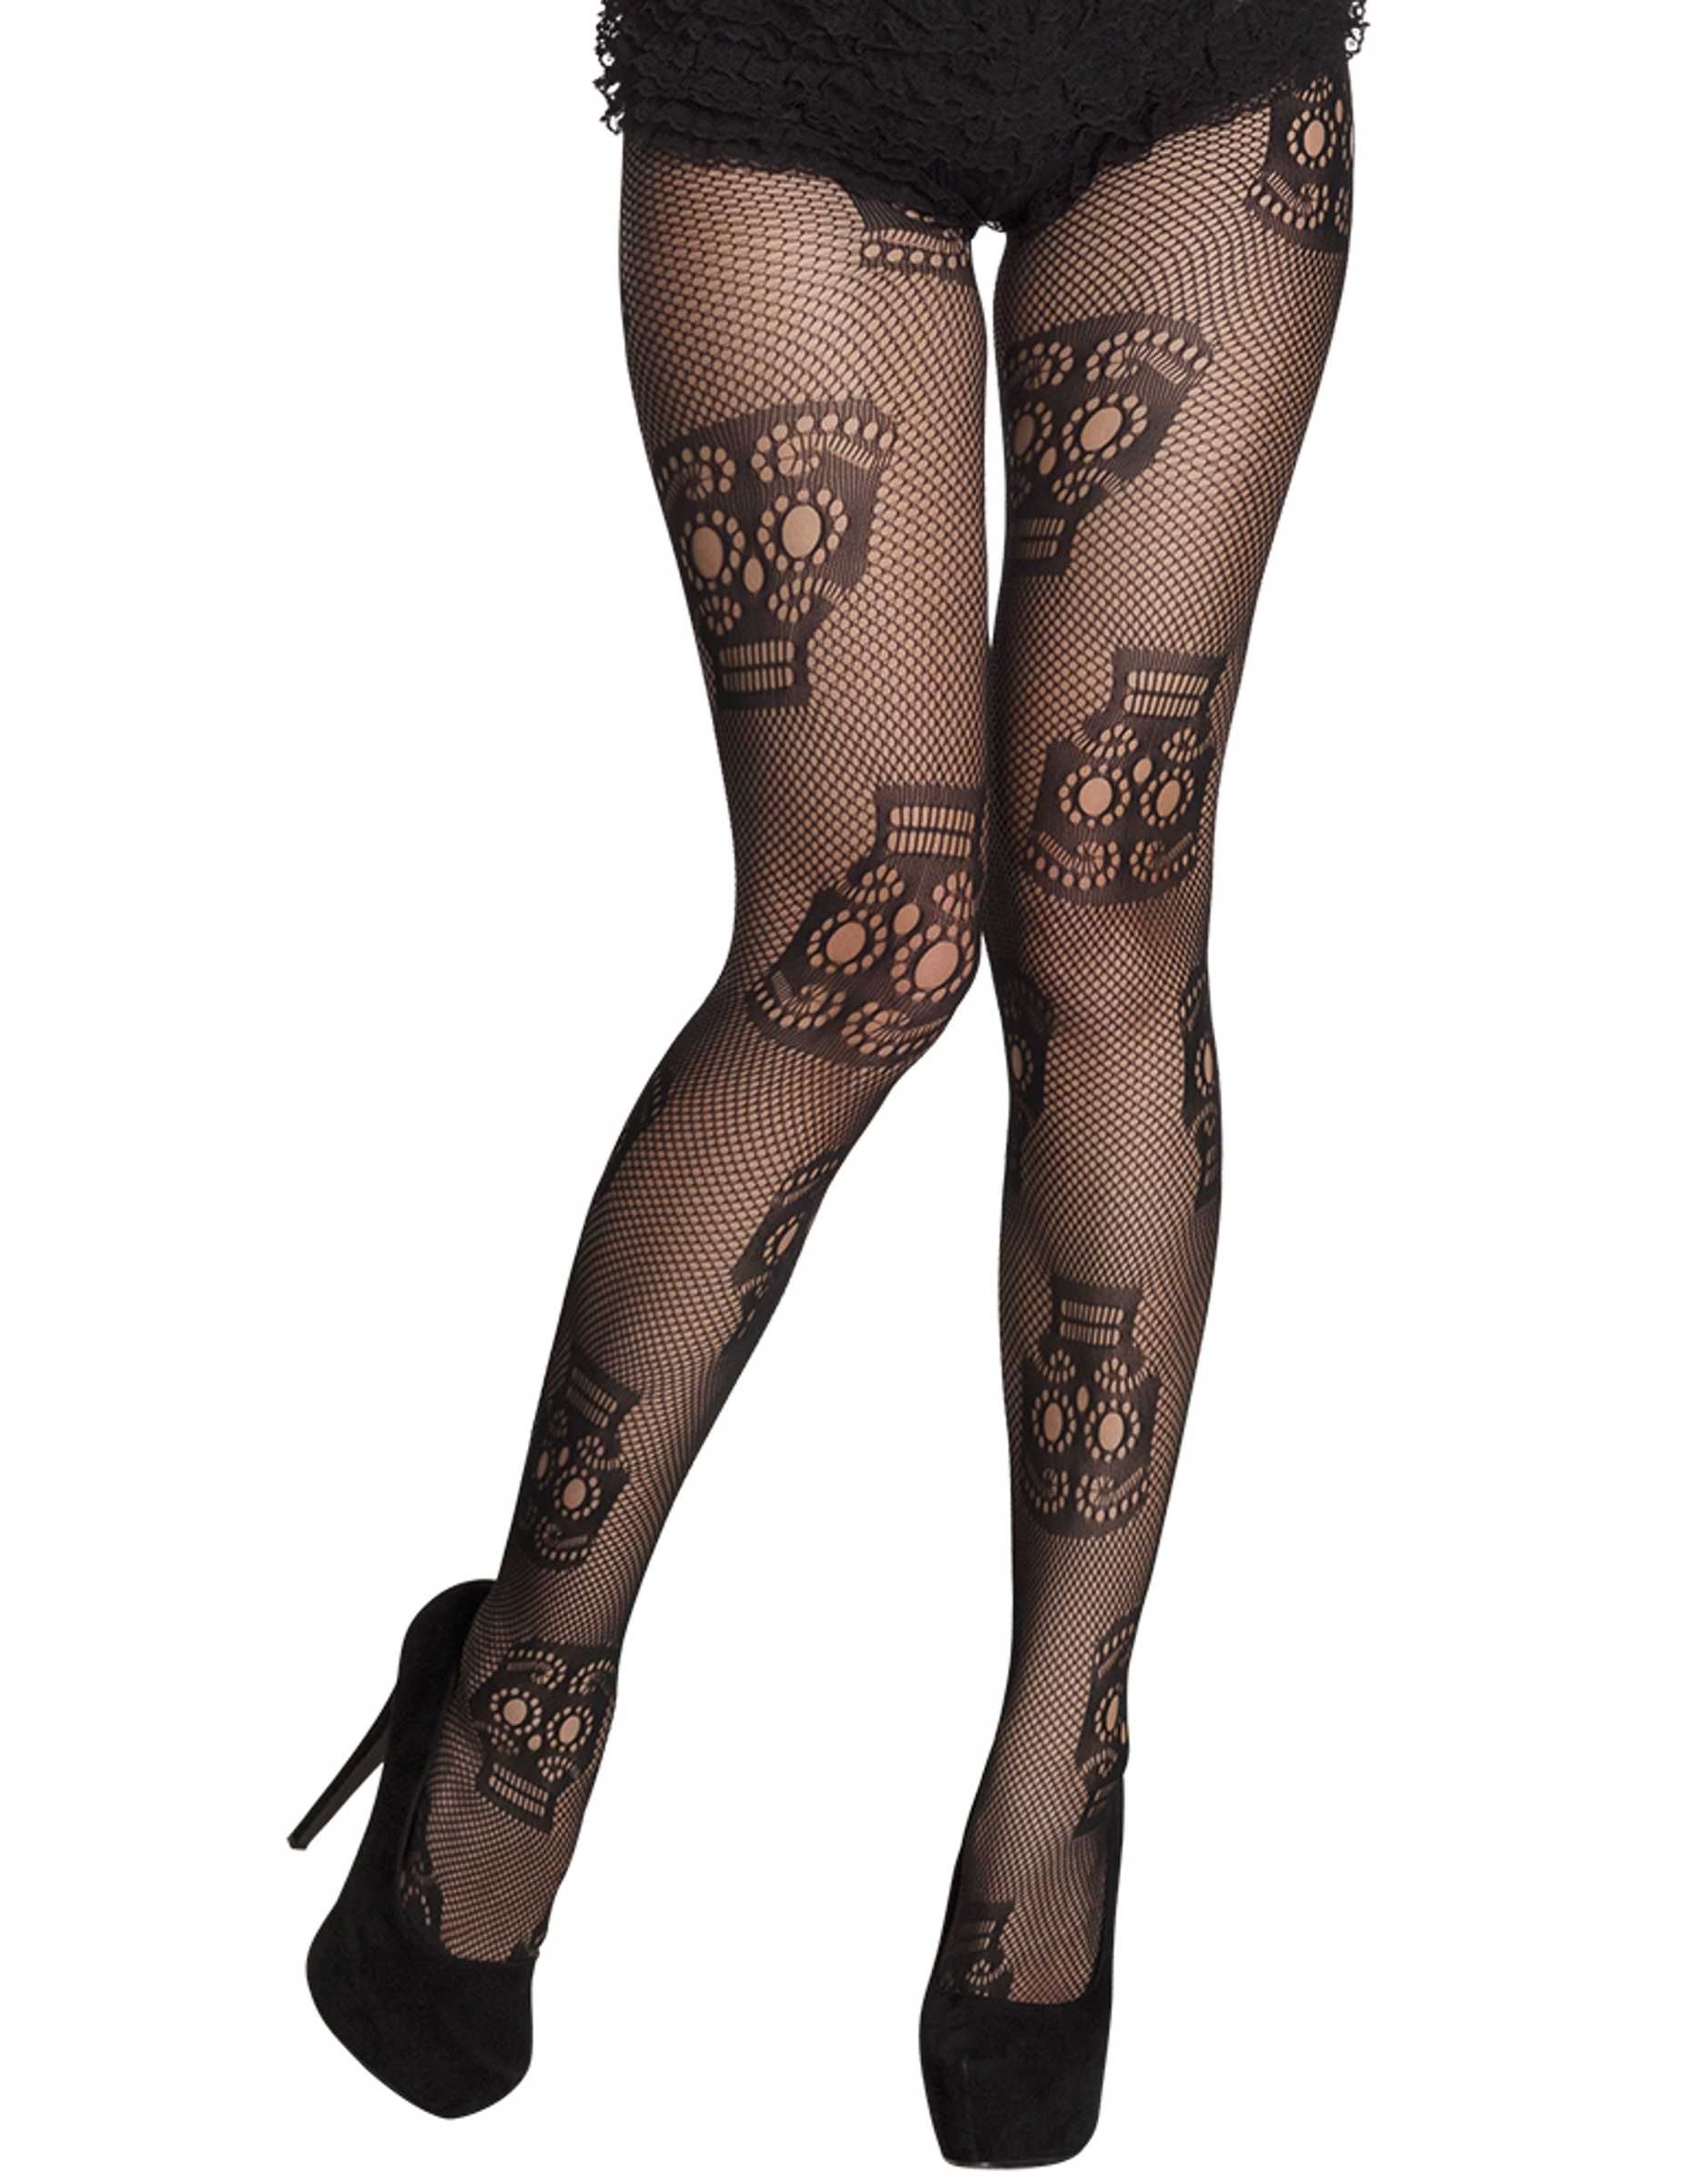 sugar skull strumpfhose netzstrumpfhose tag der toten schwarz g nstige faschings accessoires. Black Bedroom Furniture Sets. Home Design Ideas